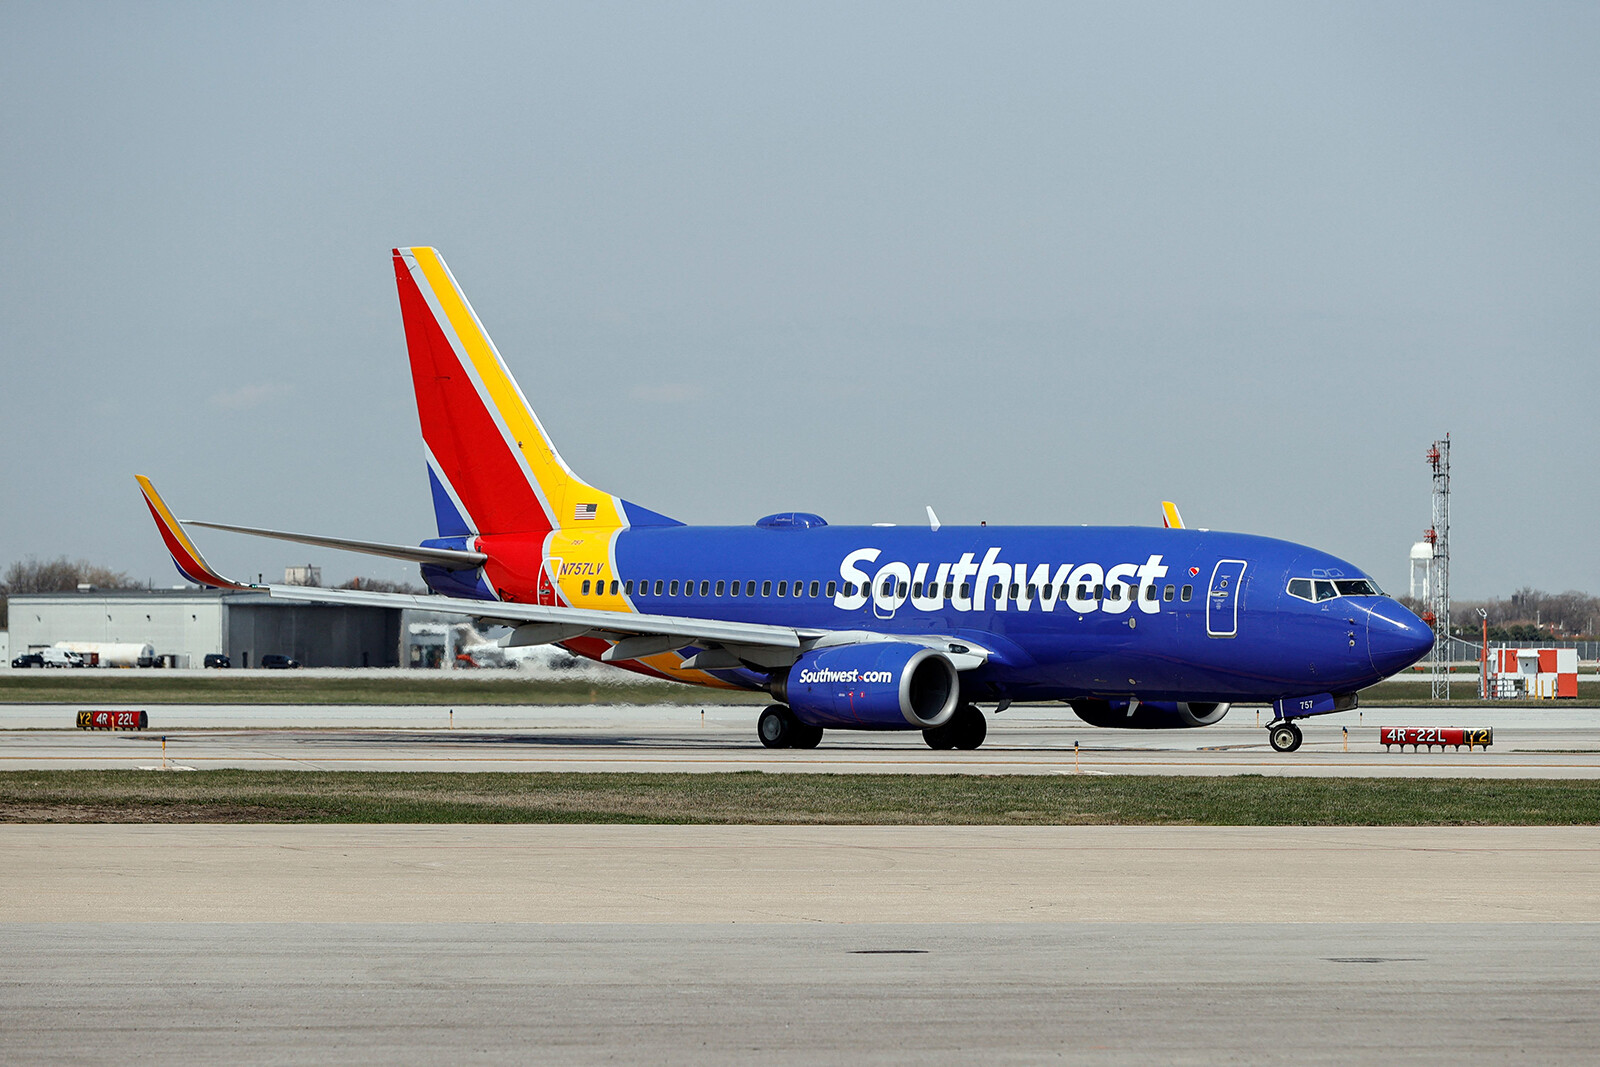 Southwest canceled more than 2,000 weekend flights and the disruption continues